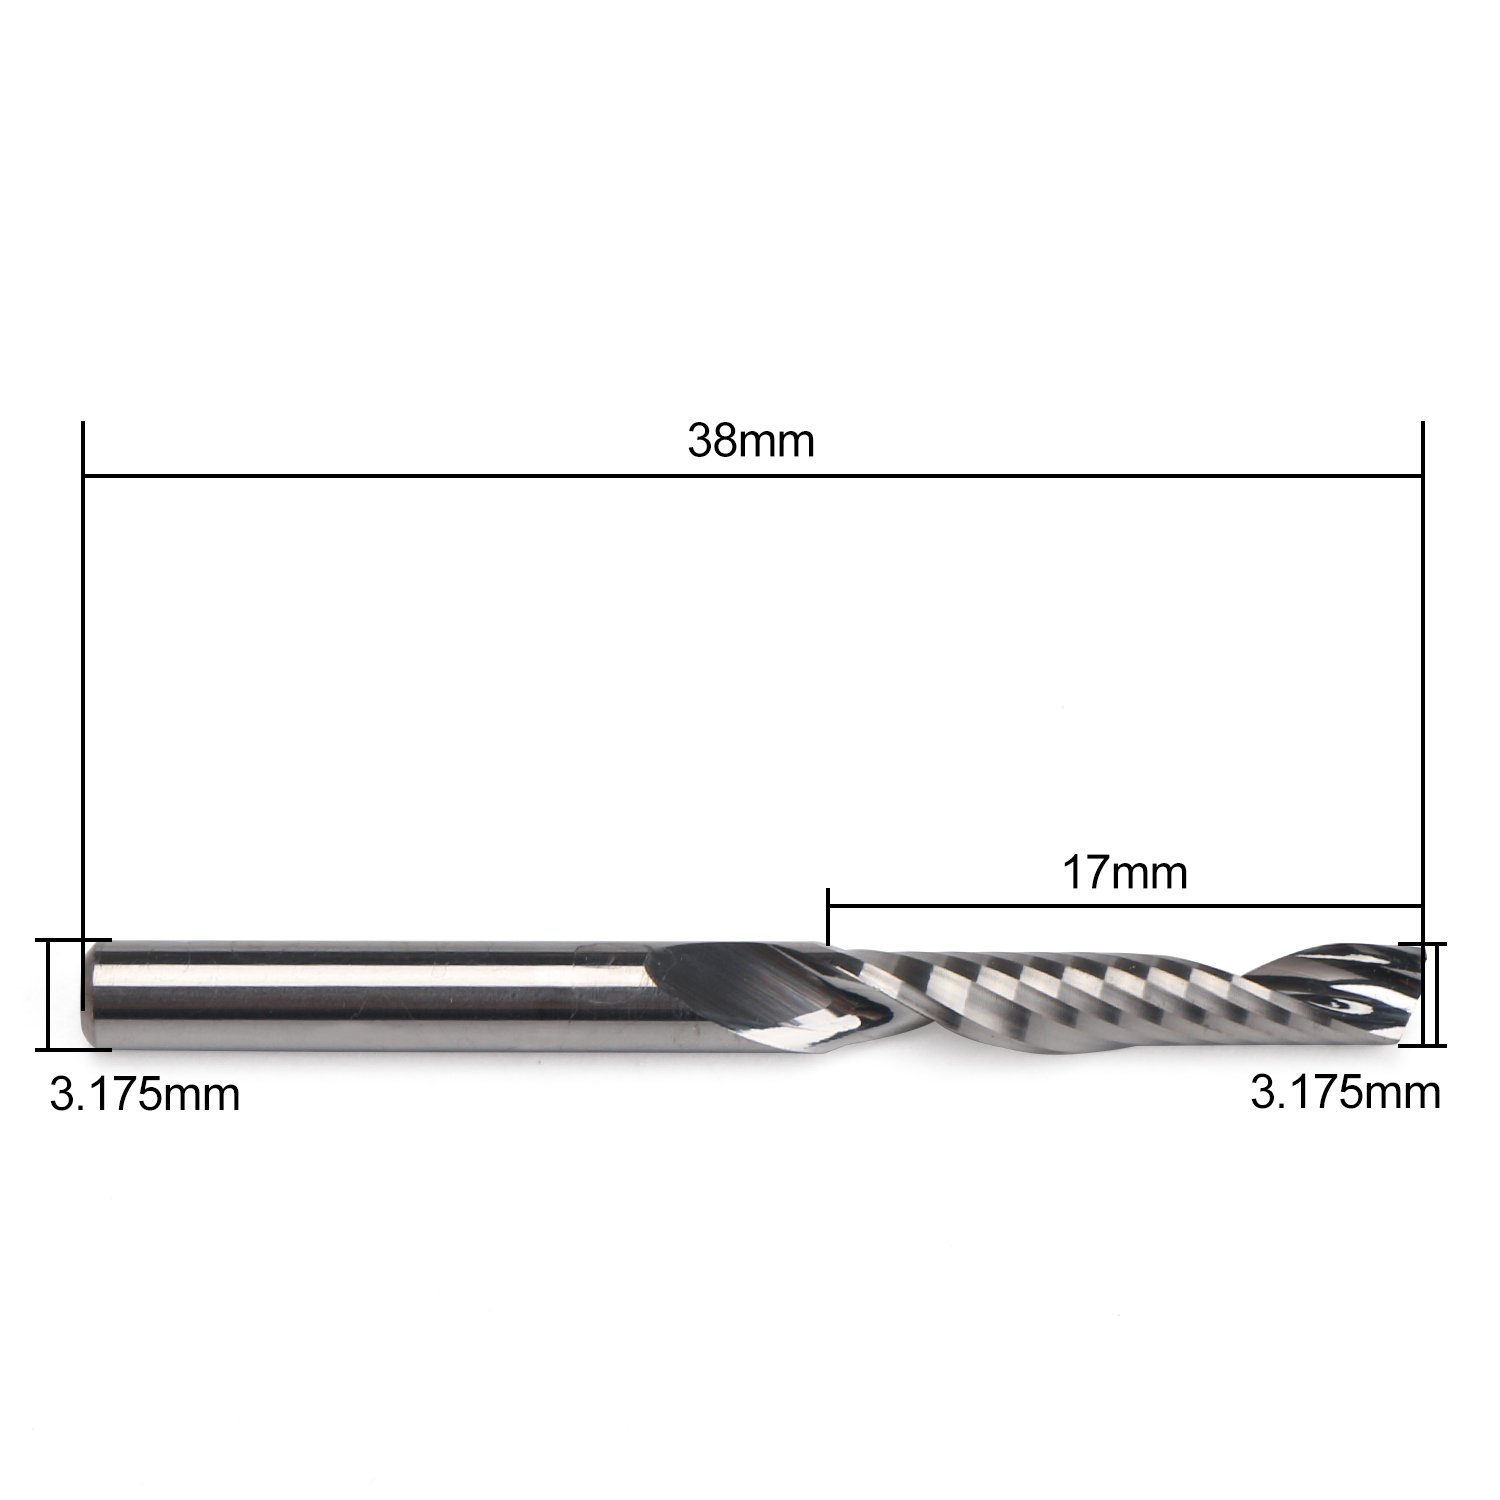 Carbide Milling Cutter, EnPoint Acrylic End Mill 3.175mm 1/8inch Shank 17mm Flute Length 3.175mm Cut Dia CNC Spiral Milling Cutter for Acrylic PVC MDF Color Plate by EnPoint (Image #2)